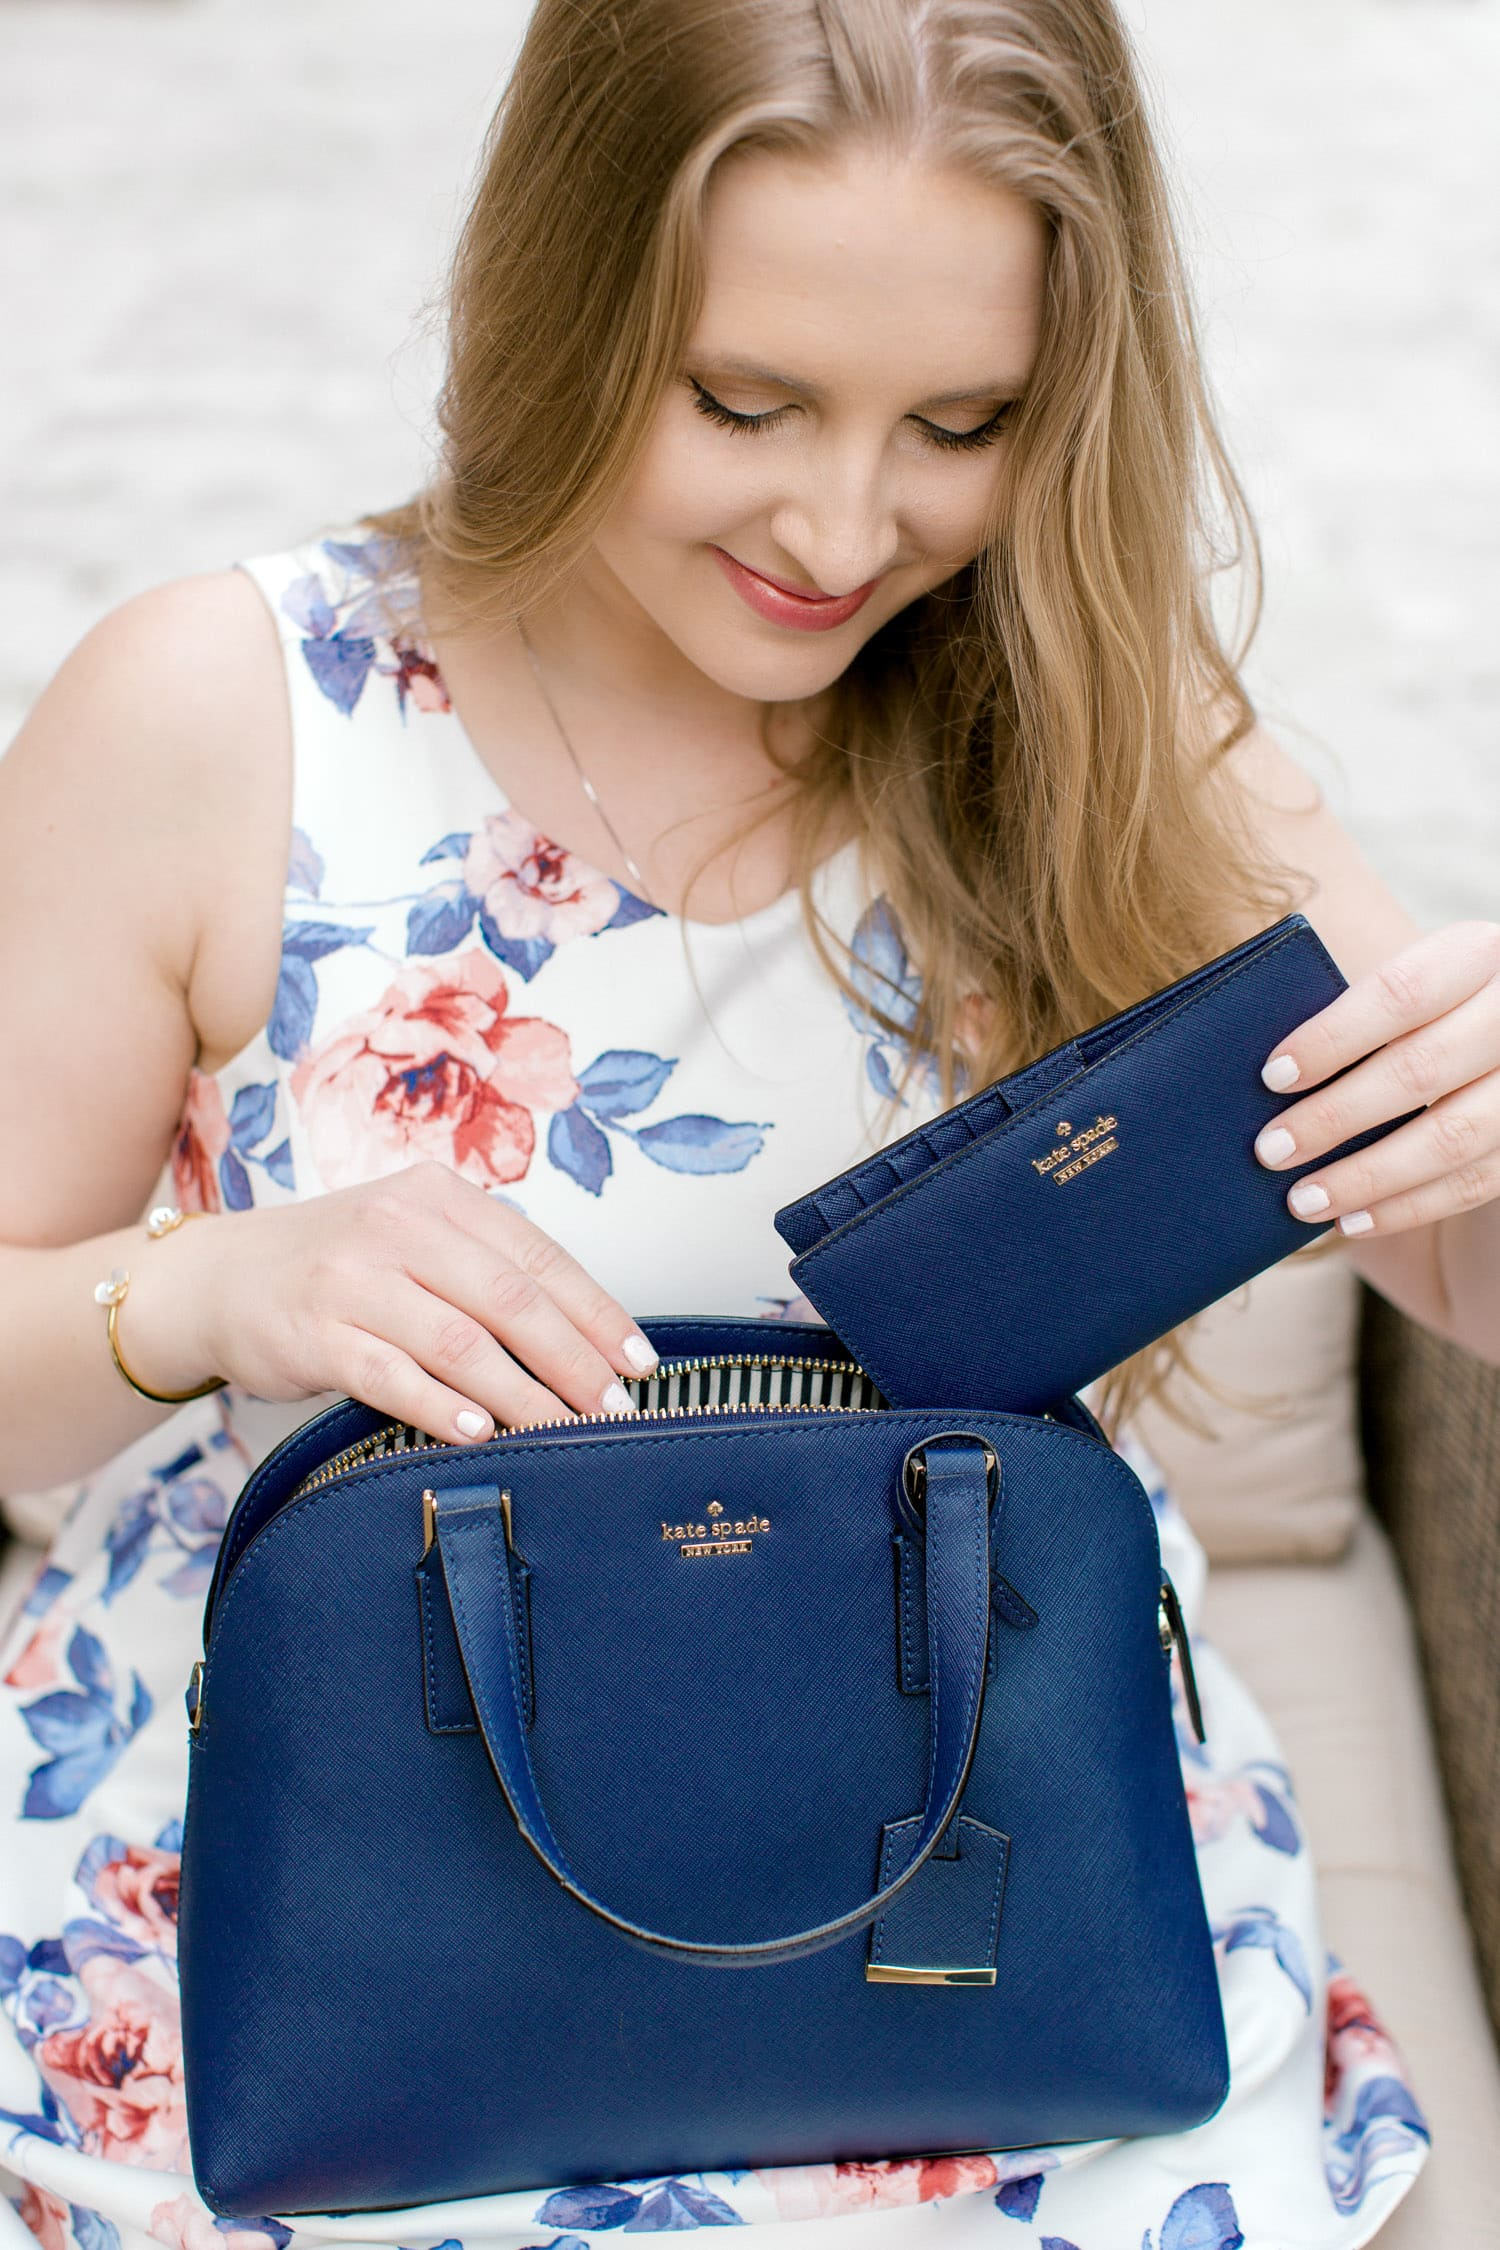 The Best of the Kate Spade sale | Kate Spade sale| floral dress | blue bag | Ashley Brooke Nicholas